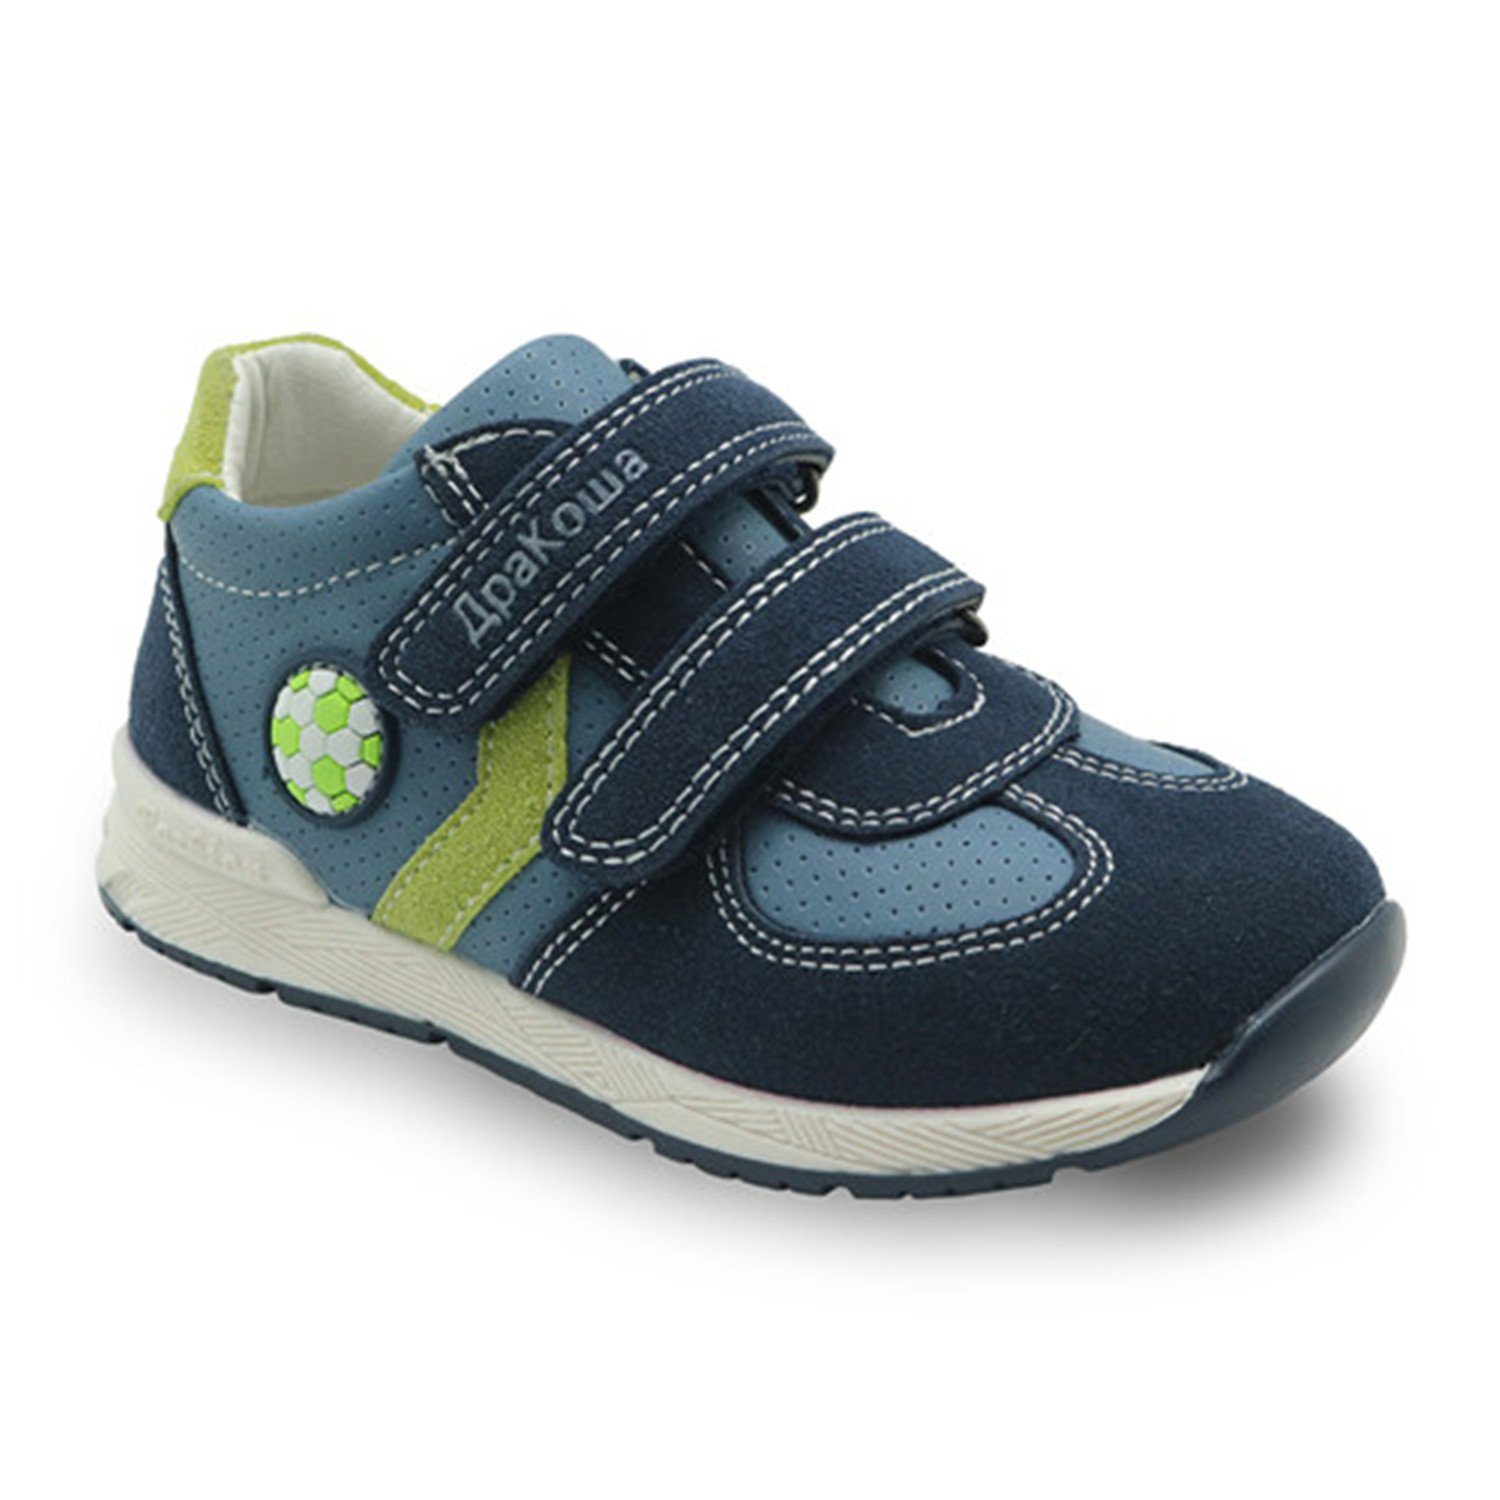 Toddler Kids Casual Shoes PU Leather Breathable Sneakers Toddler Boys Sneaker Sport Trainer EU 21-26